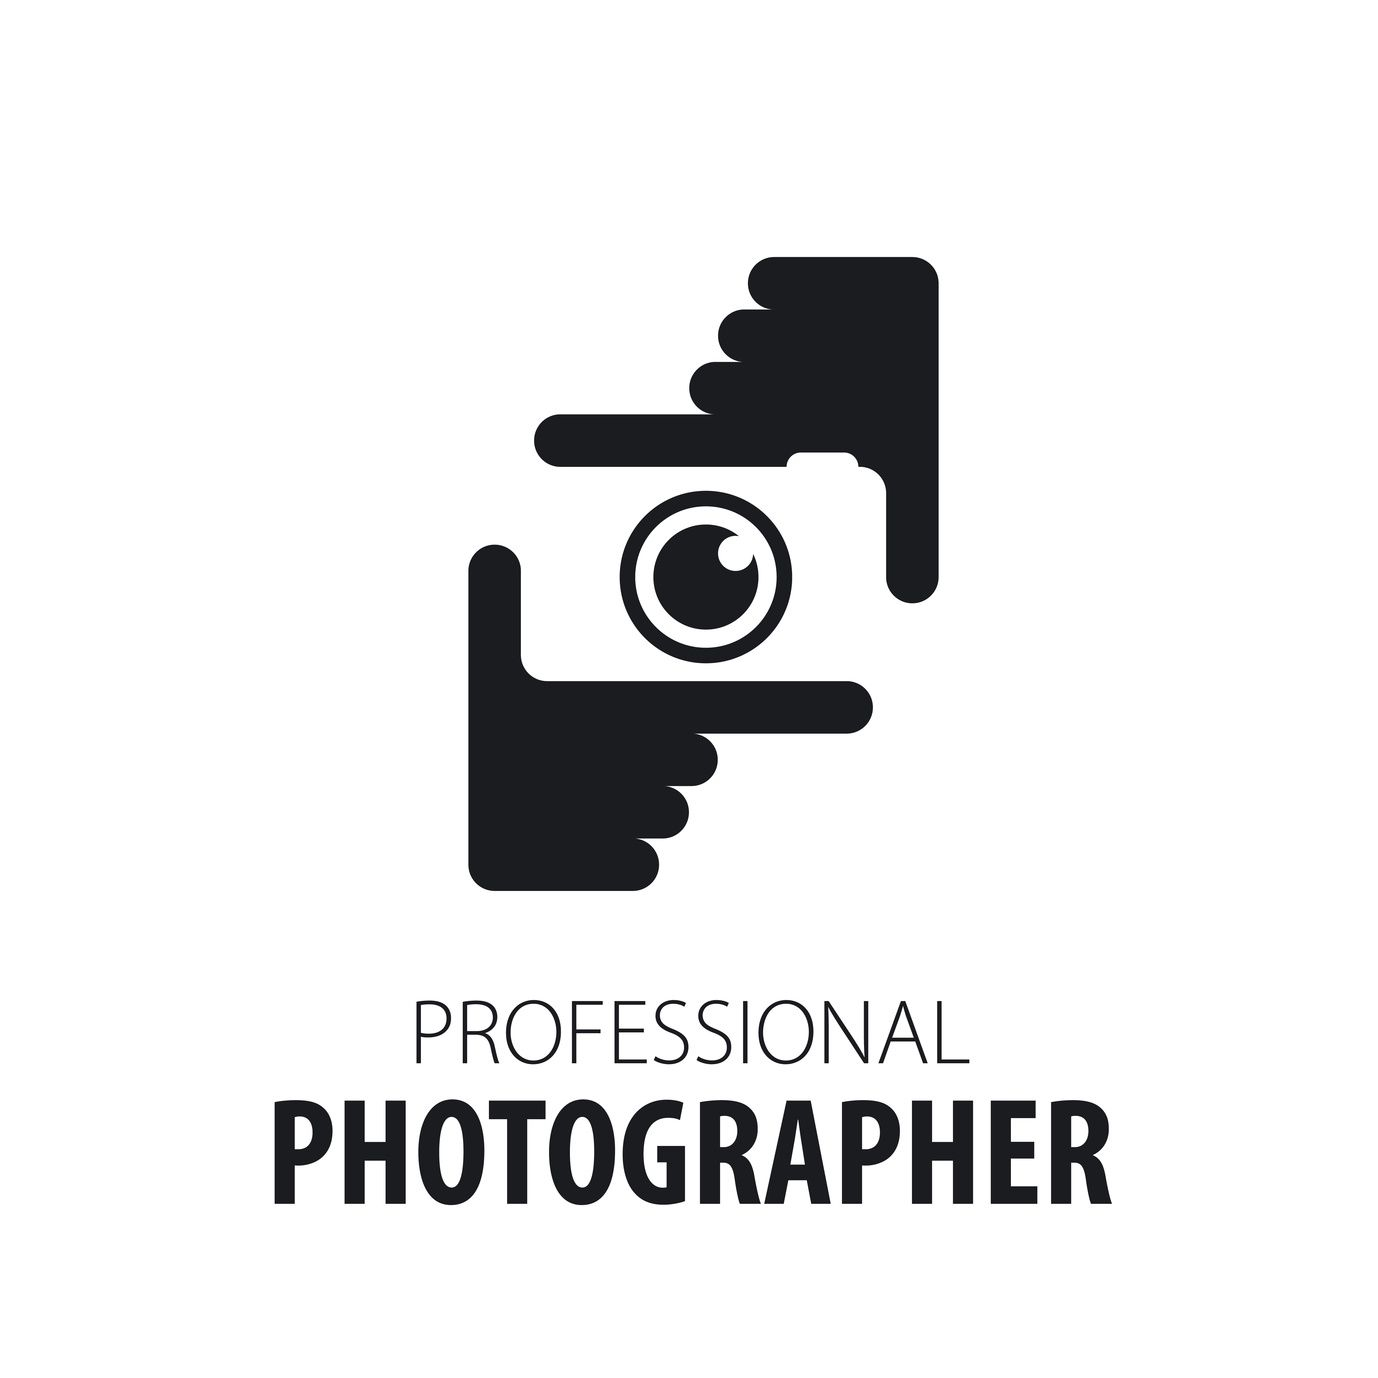 Photographer Logo Photography Logo Design Photo Logo Design Camera Logos Design